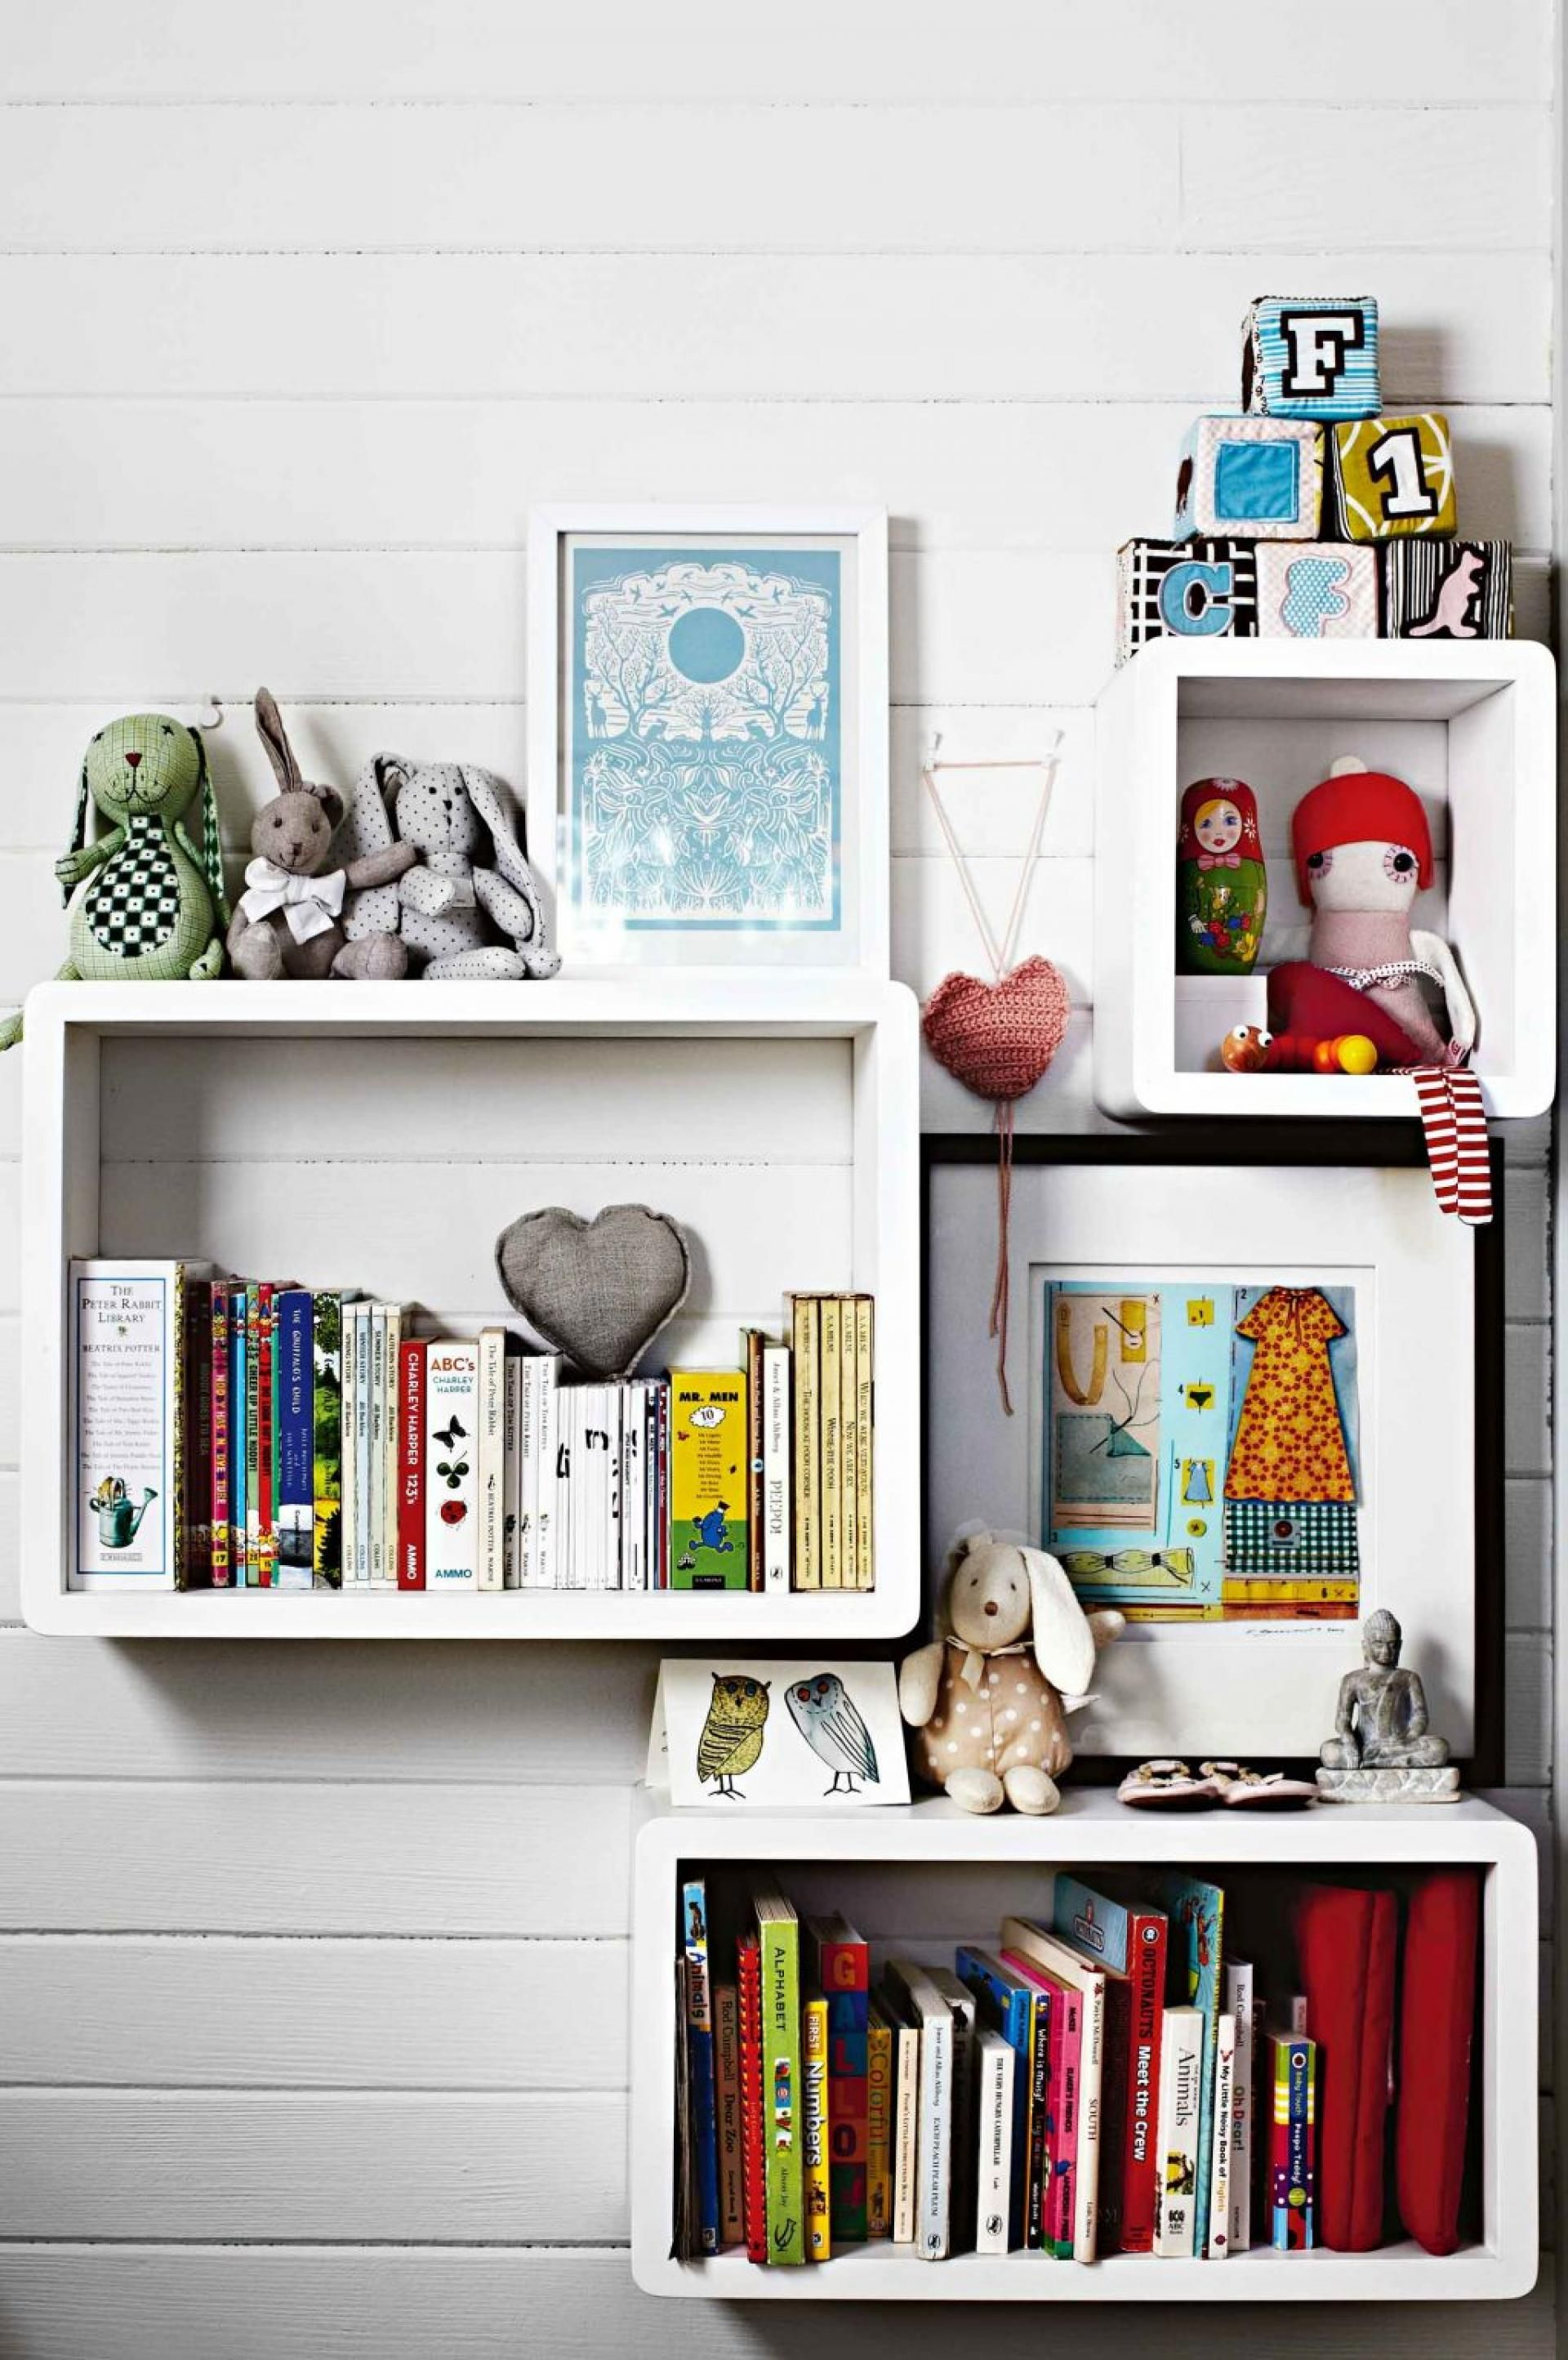 8 Great Storage Ideas For Kids Rooms Bookshelf Decor Creative